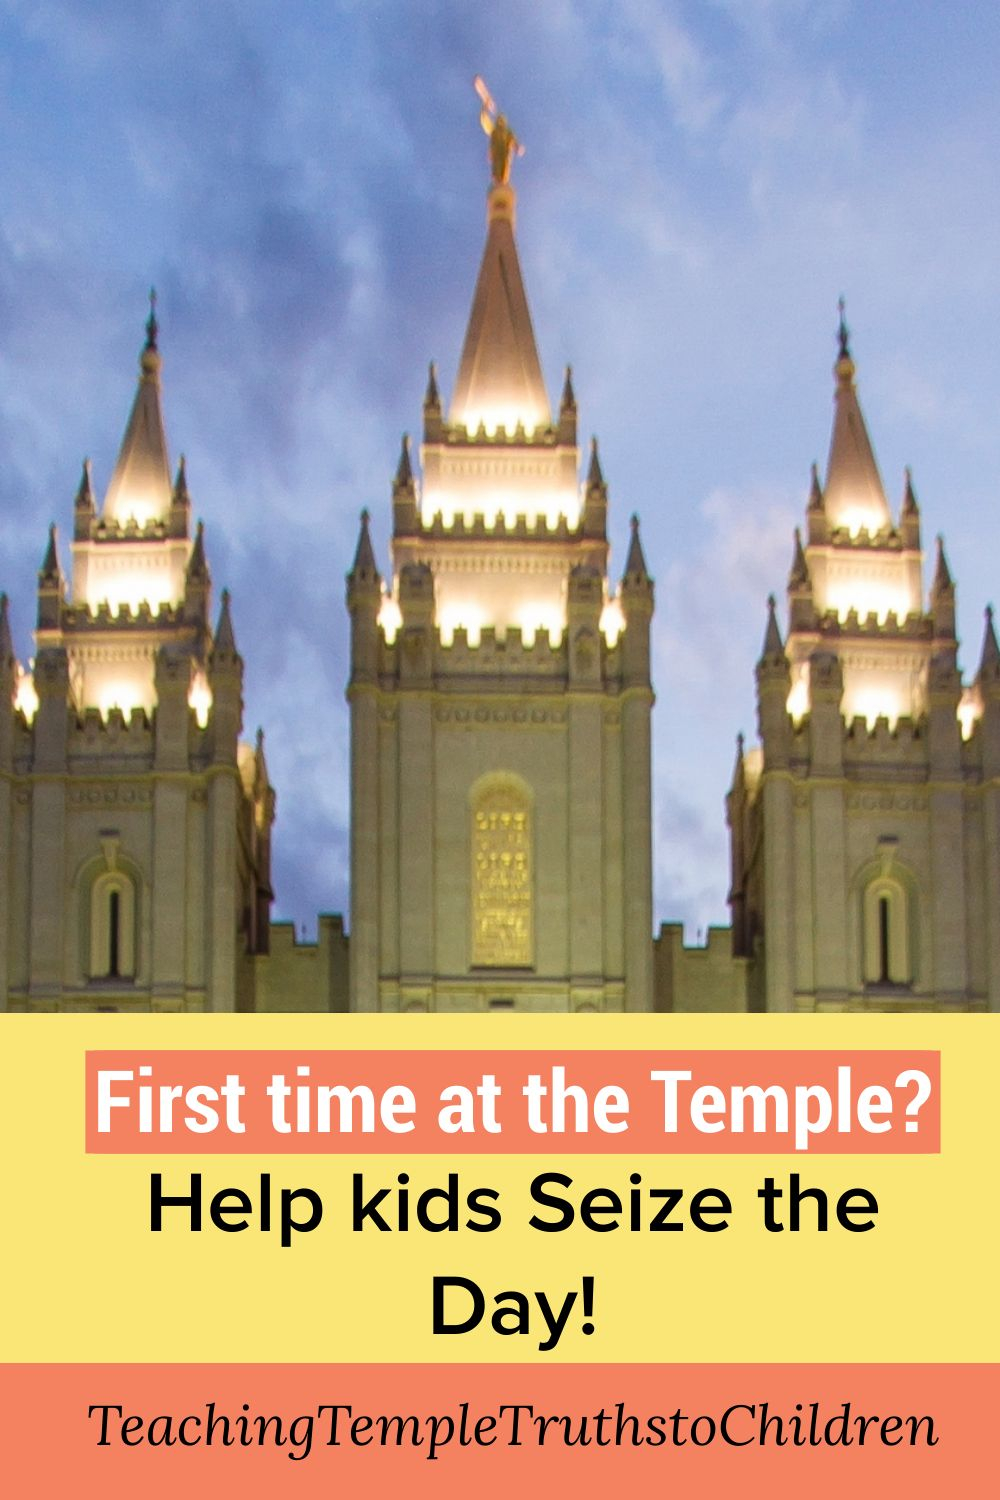 """First time at the Temple? Help your kids seize the day Leave a Comment / Should I Share Temple Truths with My children? / By Suzi First impressions are powerful. Here are 4 great tips to help your kids start their Temple journey out right. """"Temples are place of personal revelation. When I have been weighted down by a problem or a difficulty, I have gone to the House of the Lord with a prayer in my heart for answers."""" Ezra Taft Benson 4 tips to help your kids get the most out of their first time at the Temple Here are four important tools you can give your kids. They will magnify the blessings of their all important first experience in the Temple. Take a few minutes to talk to them about these three skills. 1st – Come with questions, problems and a grateful heart Going to the Temple for the first time (and every time) is an amazing opportunity to receive answers and help from the Lord. There is something about going to the House of the Lord that helps us tune into the Spirit and really hear what Heavenly Father wants us to hear. You can ask your children three helpful questions to get their brains working as they prepare for this event in their lives. What is their: most perplexing question? biggest problem in their life right now? greatest blessing that they would like to express gratitude to the Lord for? 2nd – Avoid distractions People may be talking and being goofy around them. (Especially if it's a youth group.) You can encourage your kids to never let other people steal sacred moments from them. They just walked into the House of the Lord. This is their chance. They can work hard to stay focused even if people around them are not focused. First time in the Temple? Help your kids seize the day Save You can help your kids have a wonderful first experience in the Temple. 3rd – Take time to ponder and pray There will be moments of waiting. These moments can be golden as they take time to bring those three helpful questions before the Lord in pondering and prayer. T"""